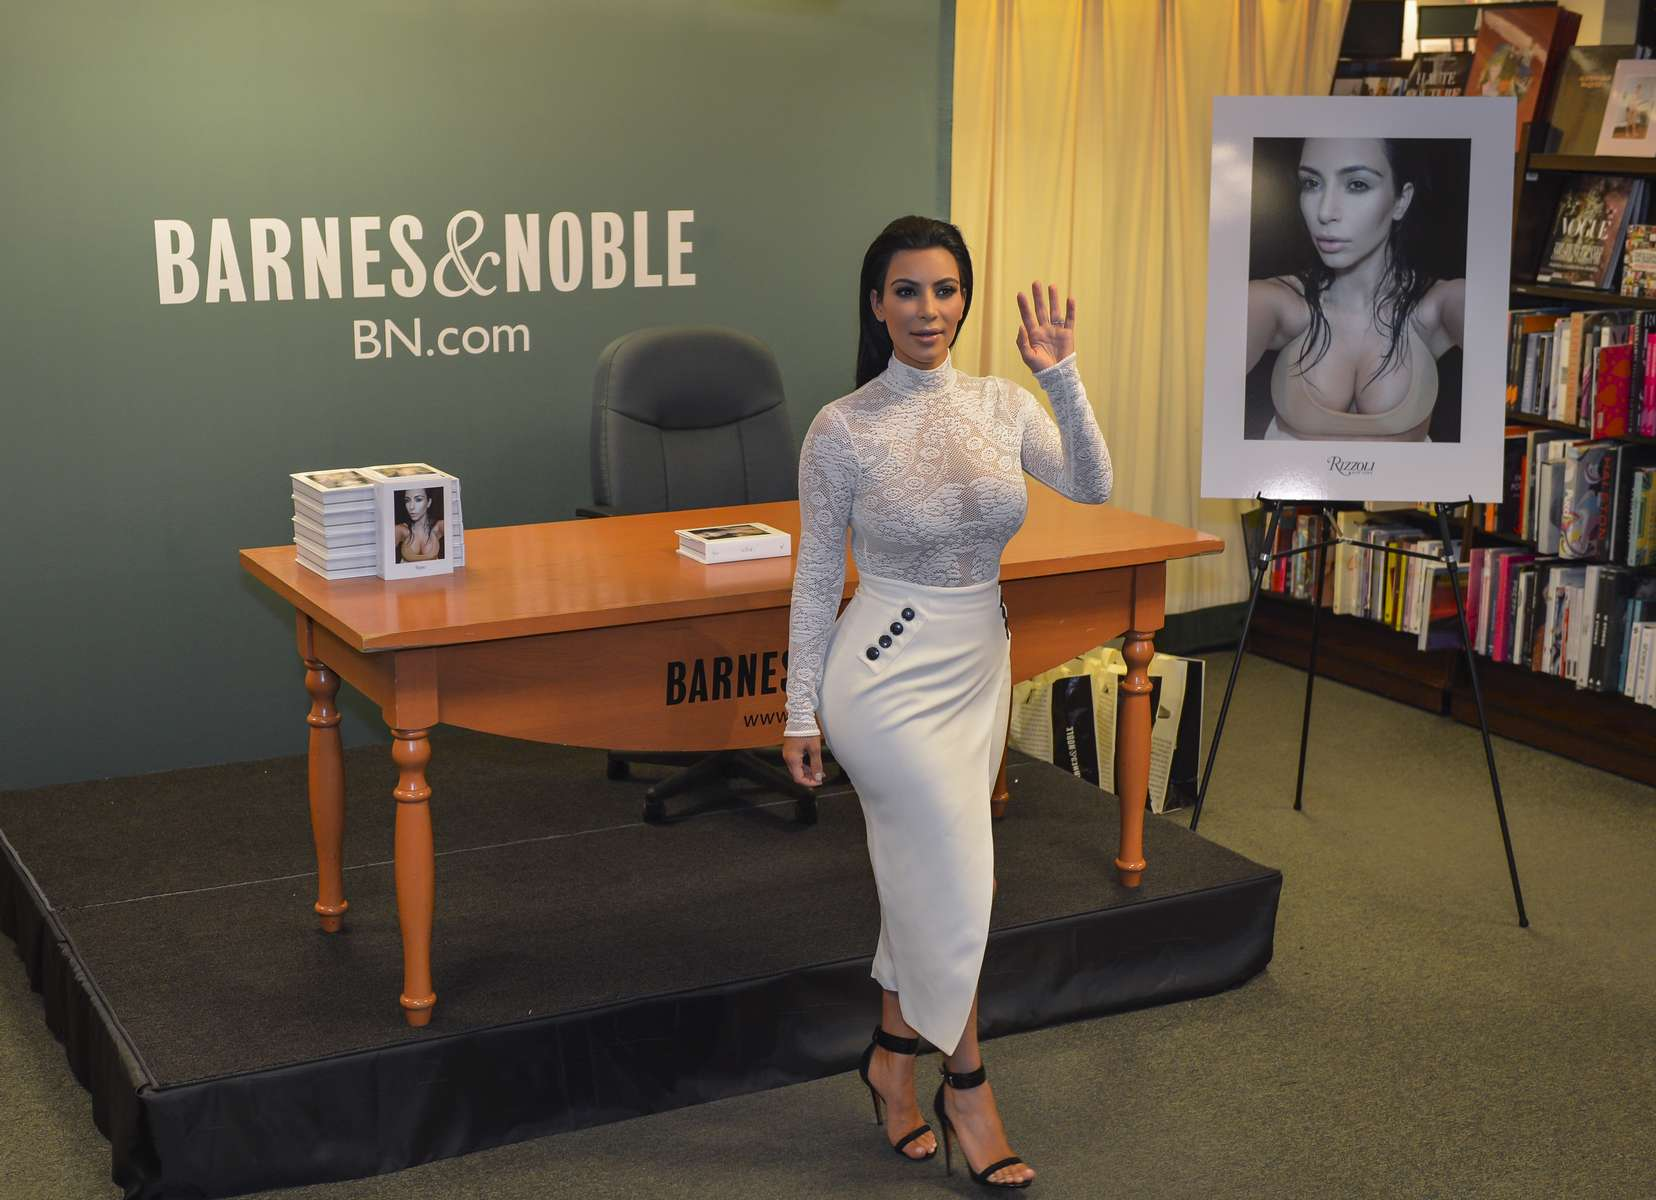 Kim Kardashian poses for photos inside Barnes & Noble at 555 5th Avenue in Manhattan before her book signing on Tuesday, May 5, 2015.